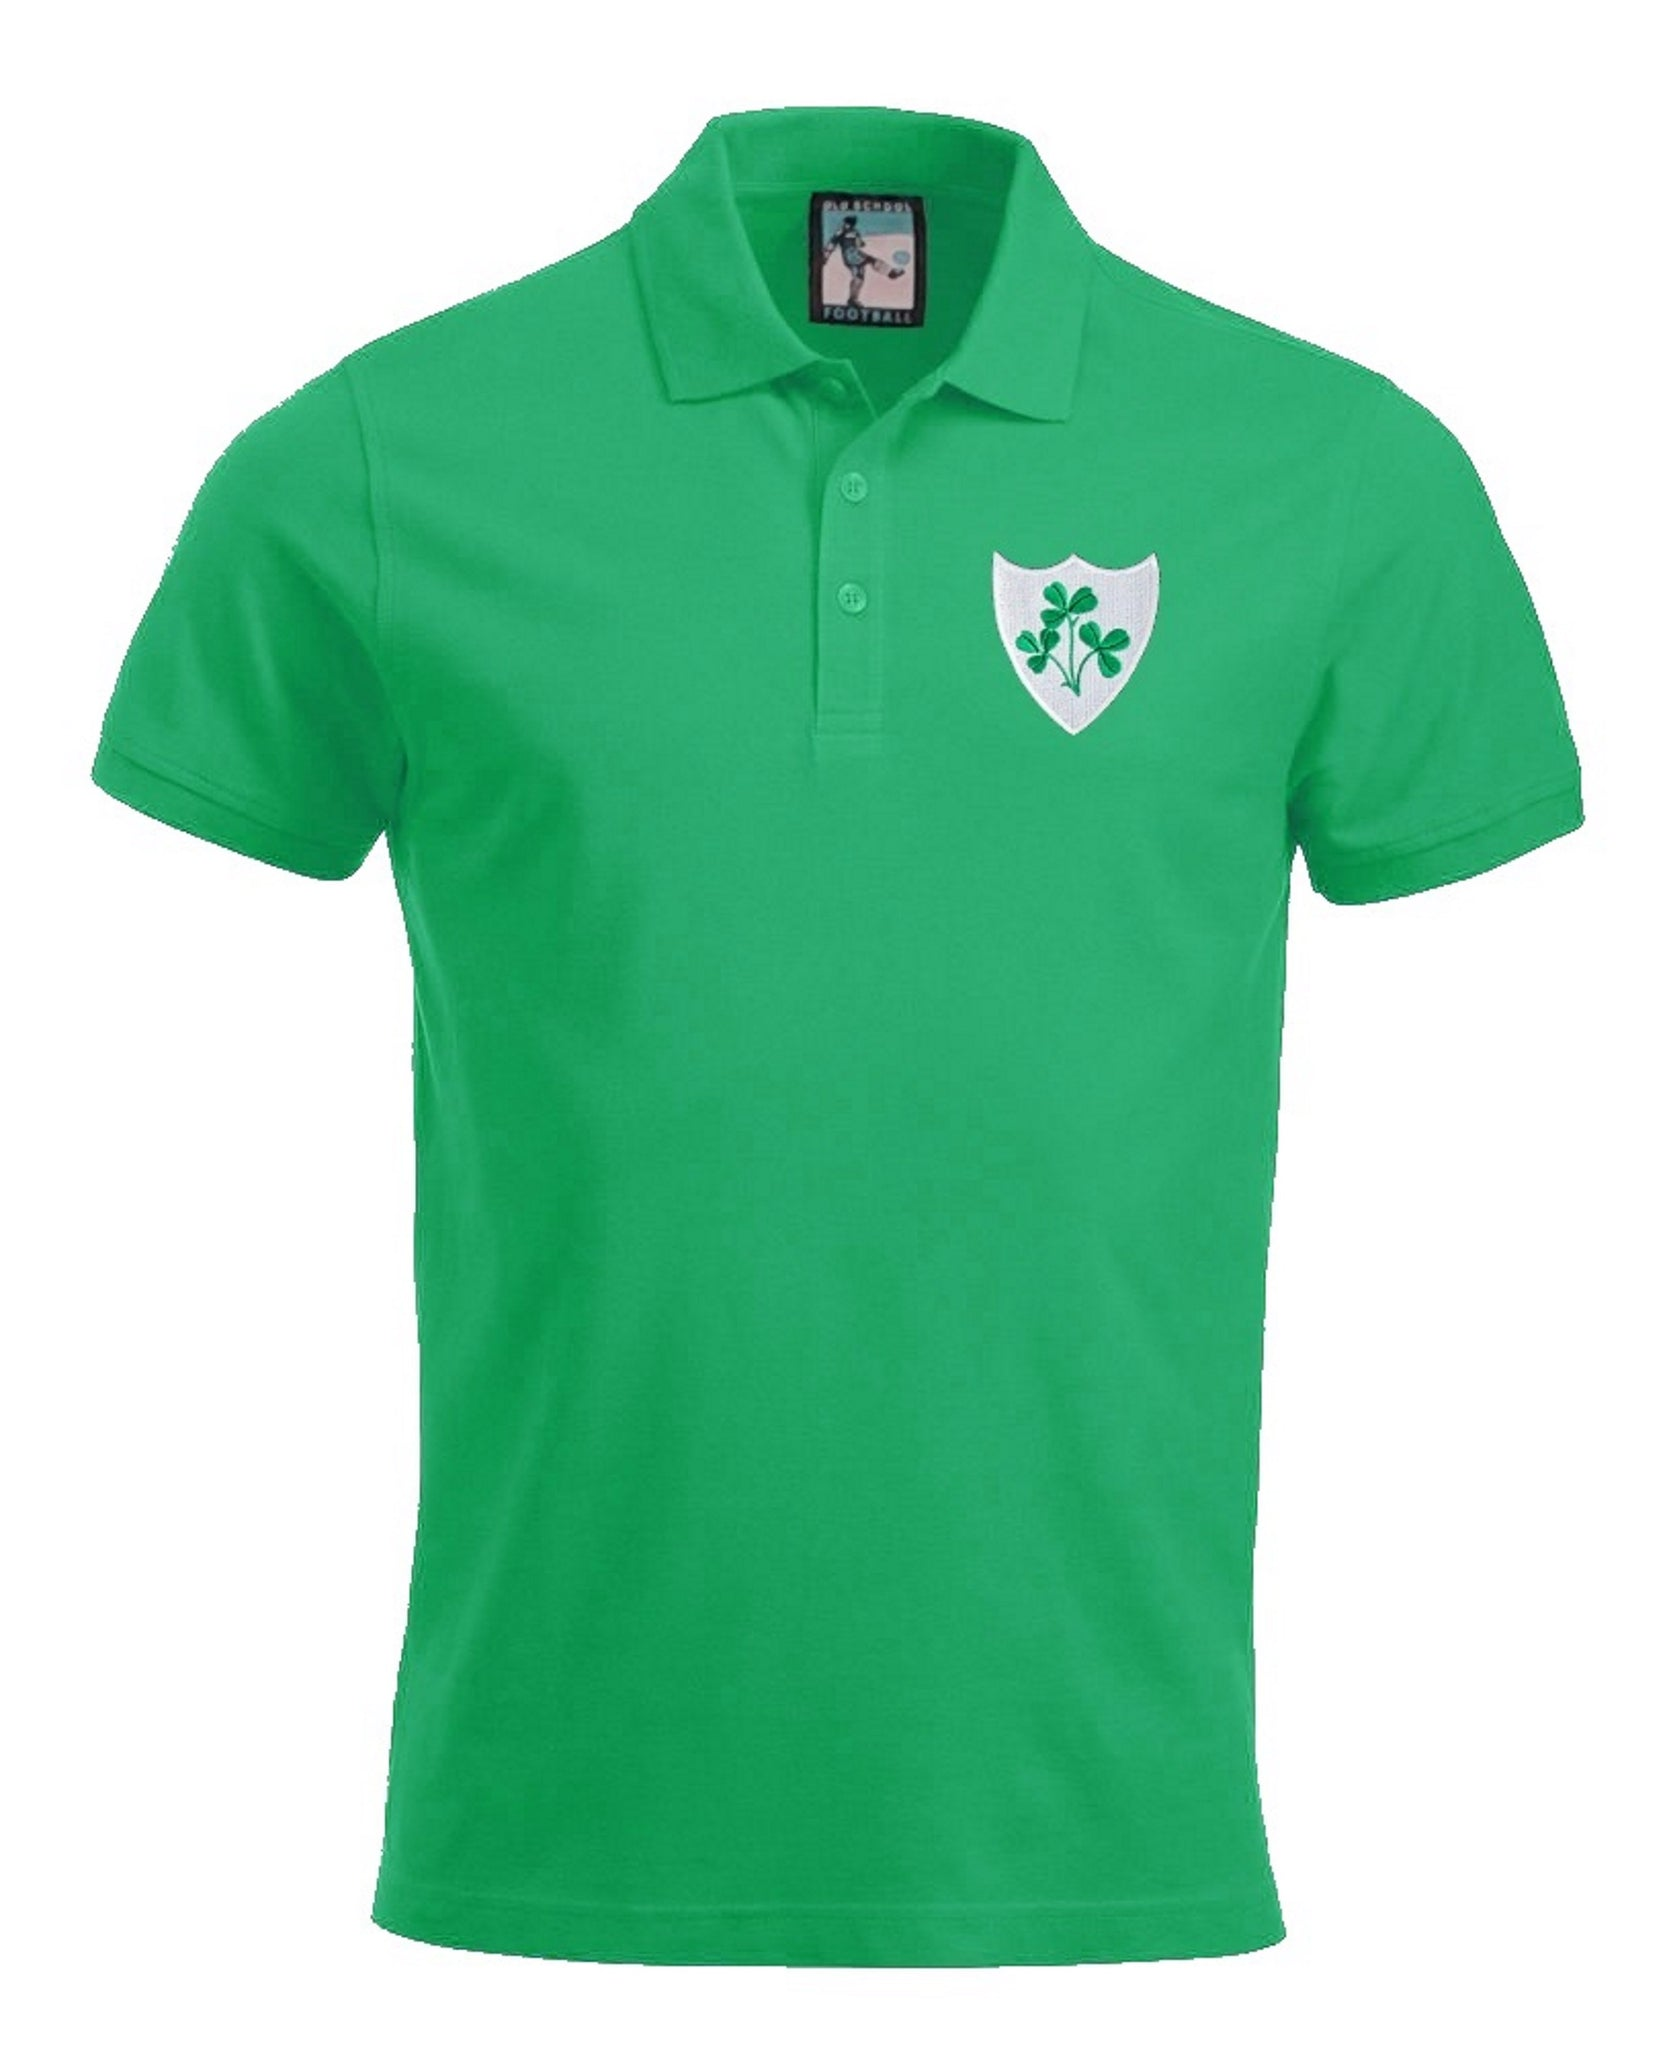 Ireland Rugby Retro Polo Shirt - Polo